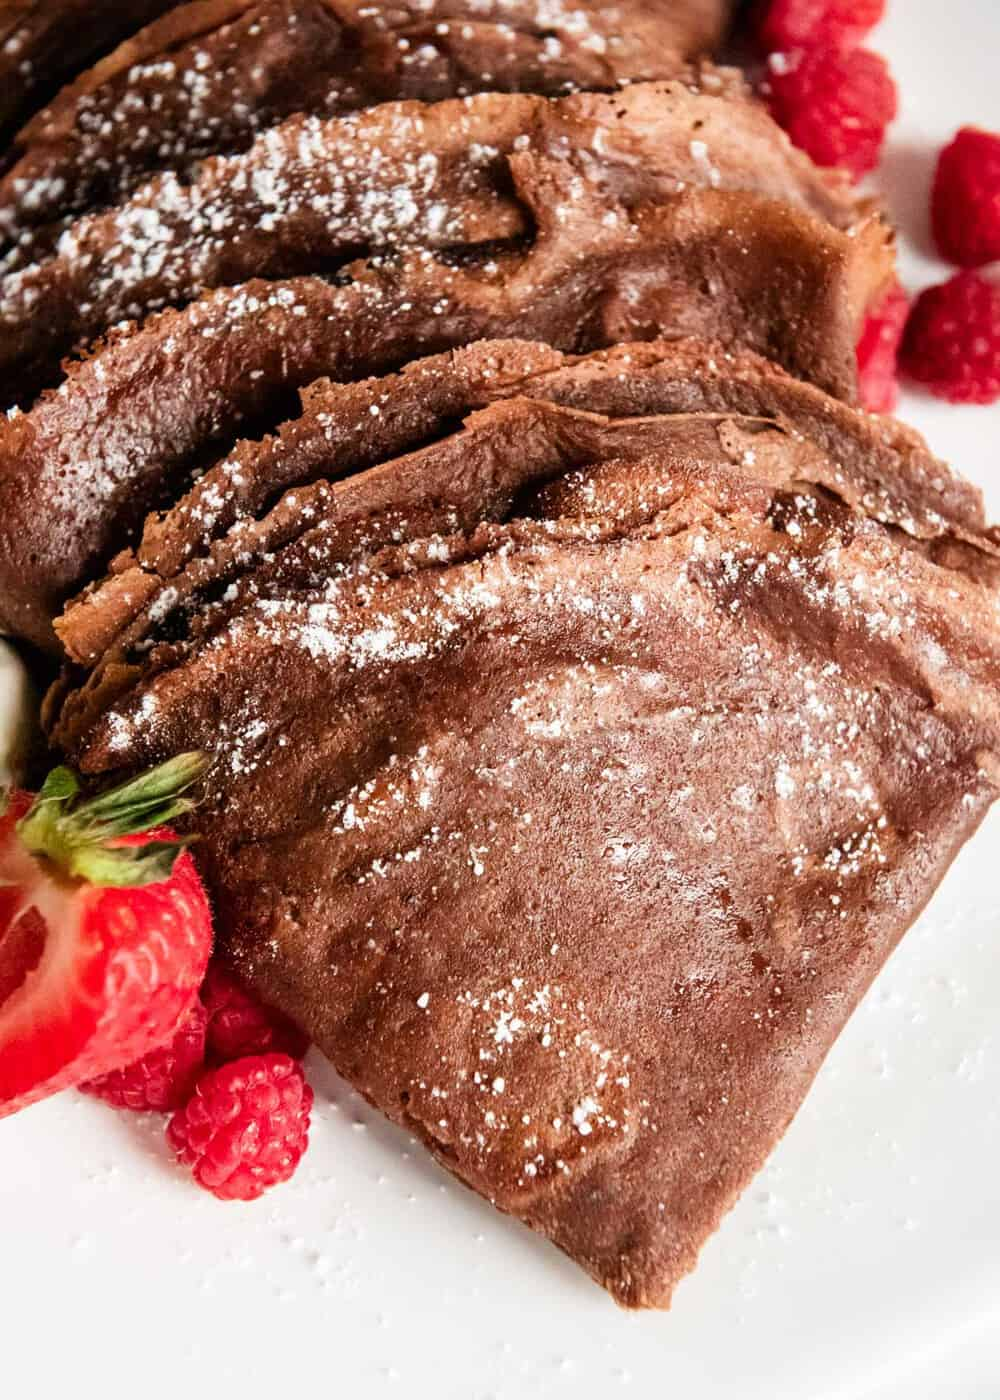 Chocolate crepes, served on a plate with red berrries